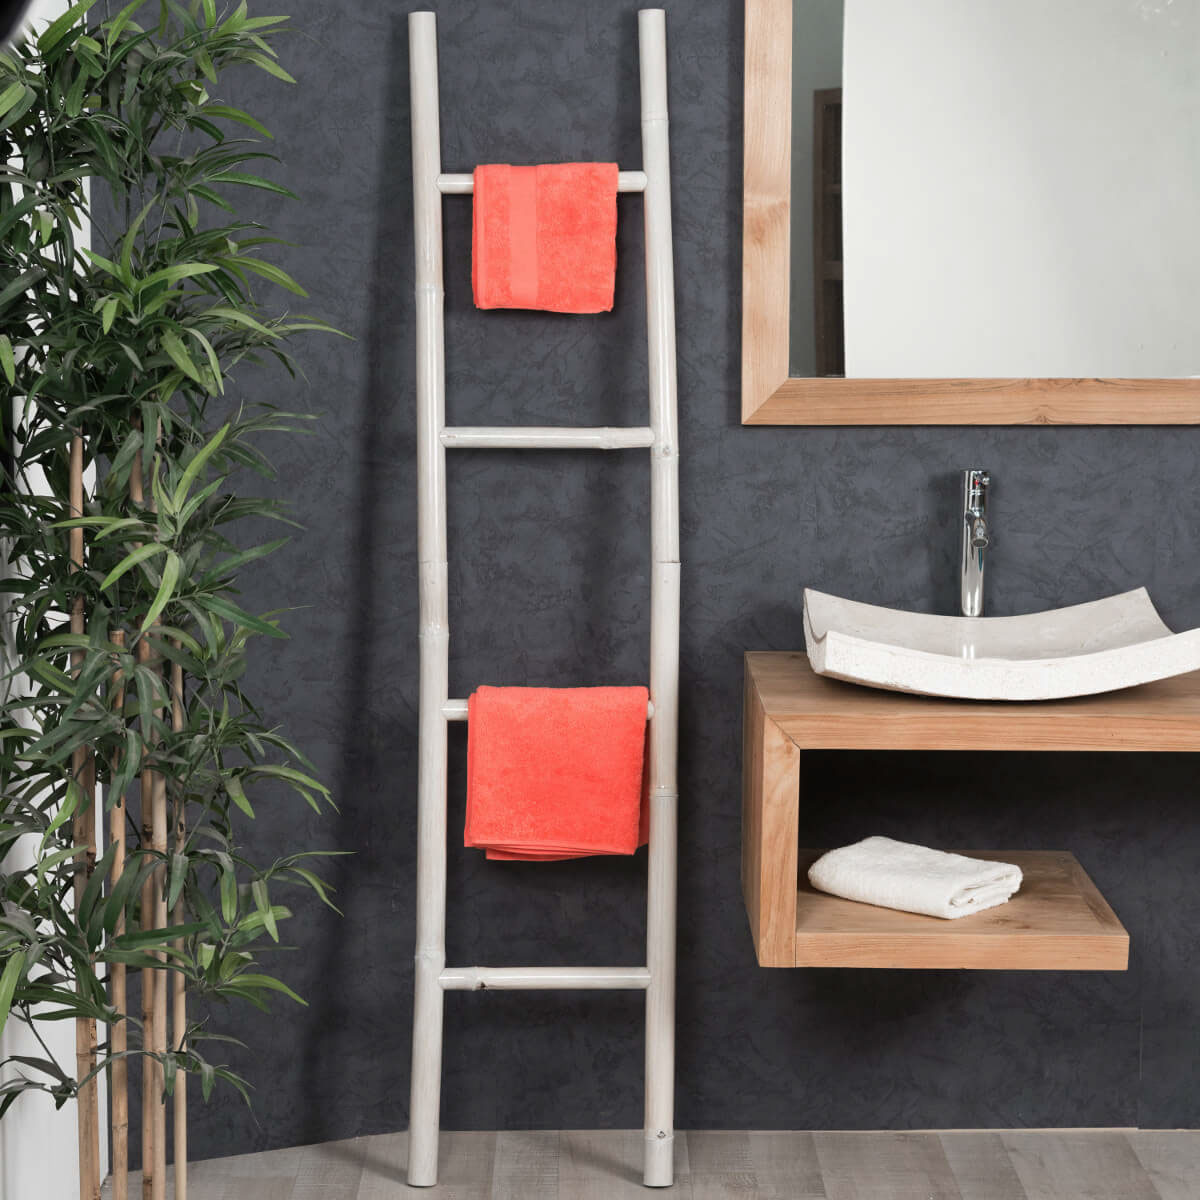 echelle salle de bain en bois amazing porte serviette tagre de salle de bain h x l x p with. Black Bedroom Furniture Sets. Home Design Ideas